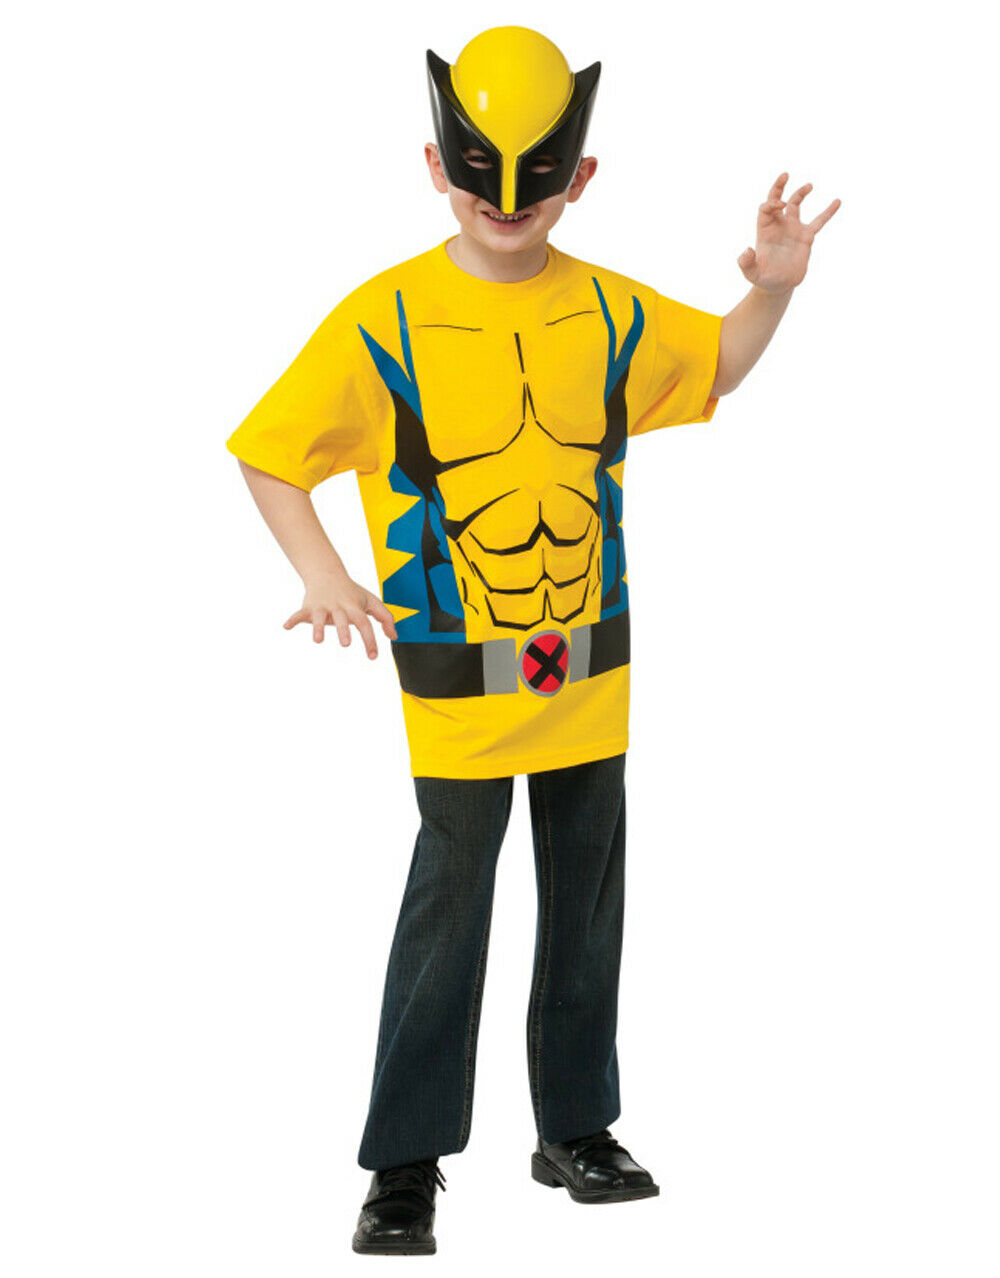 Wolverine Shirt Accessory Kit, Kids Outfit, L Age 8-10 Height 142-152 cm